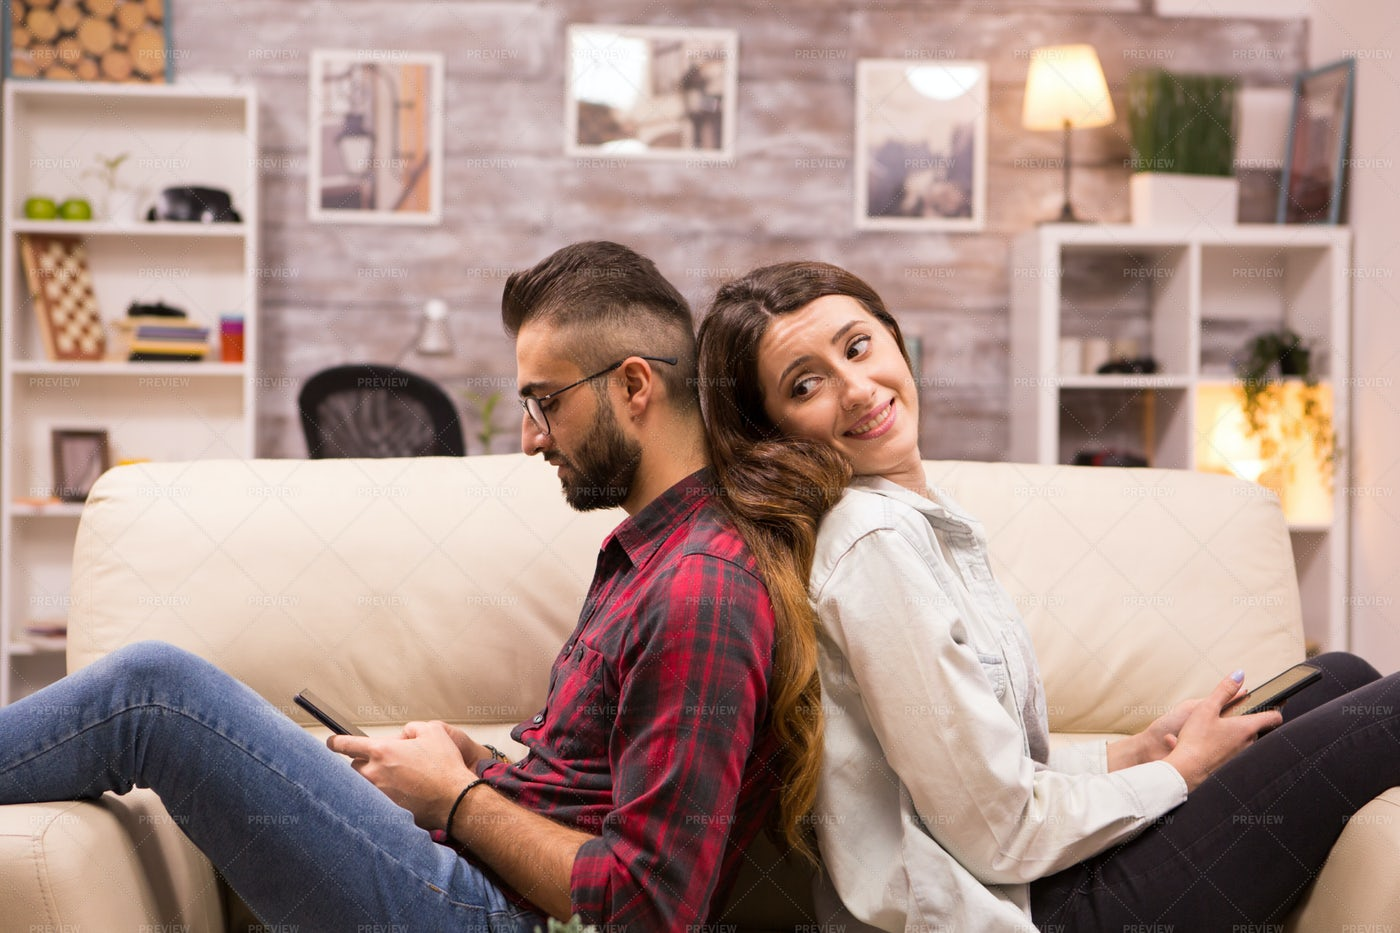 Leaning Against Each Other: Stock Photos